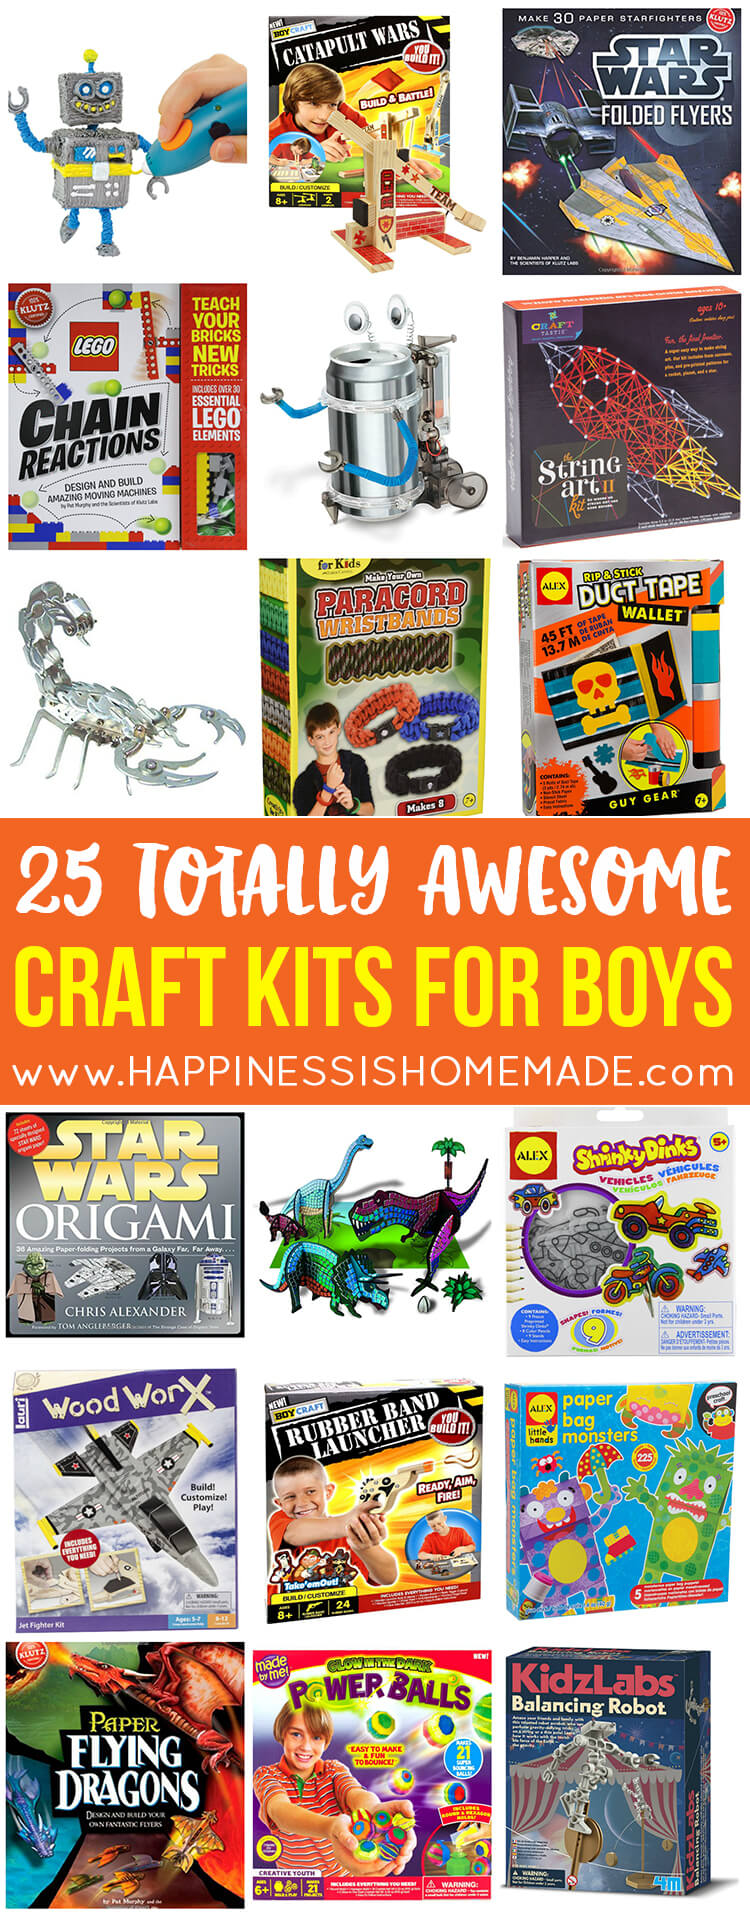 "25 Awesome Craft Kits for Boys - These 25 craft kits for boys are totally awesome - nothing pink or ""girly"" on the packaging! Great gift ideas for Christmas, birthdays, and holidays!"